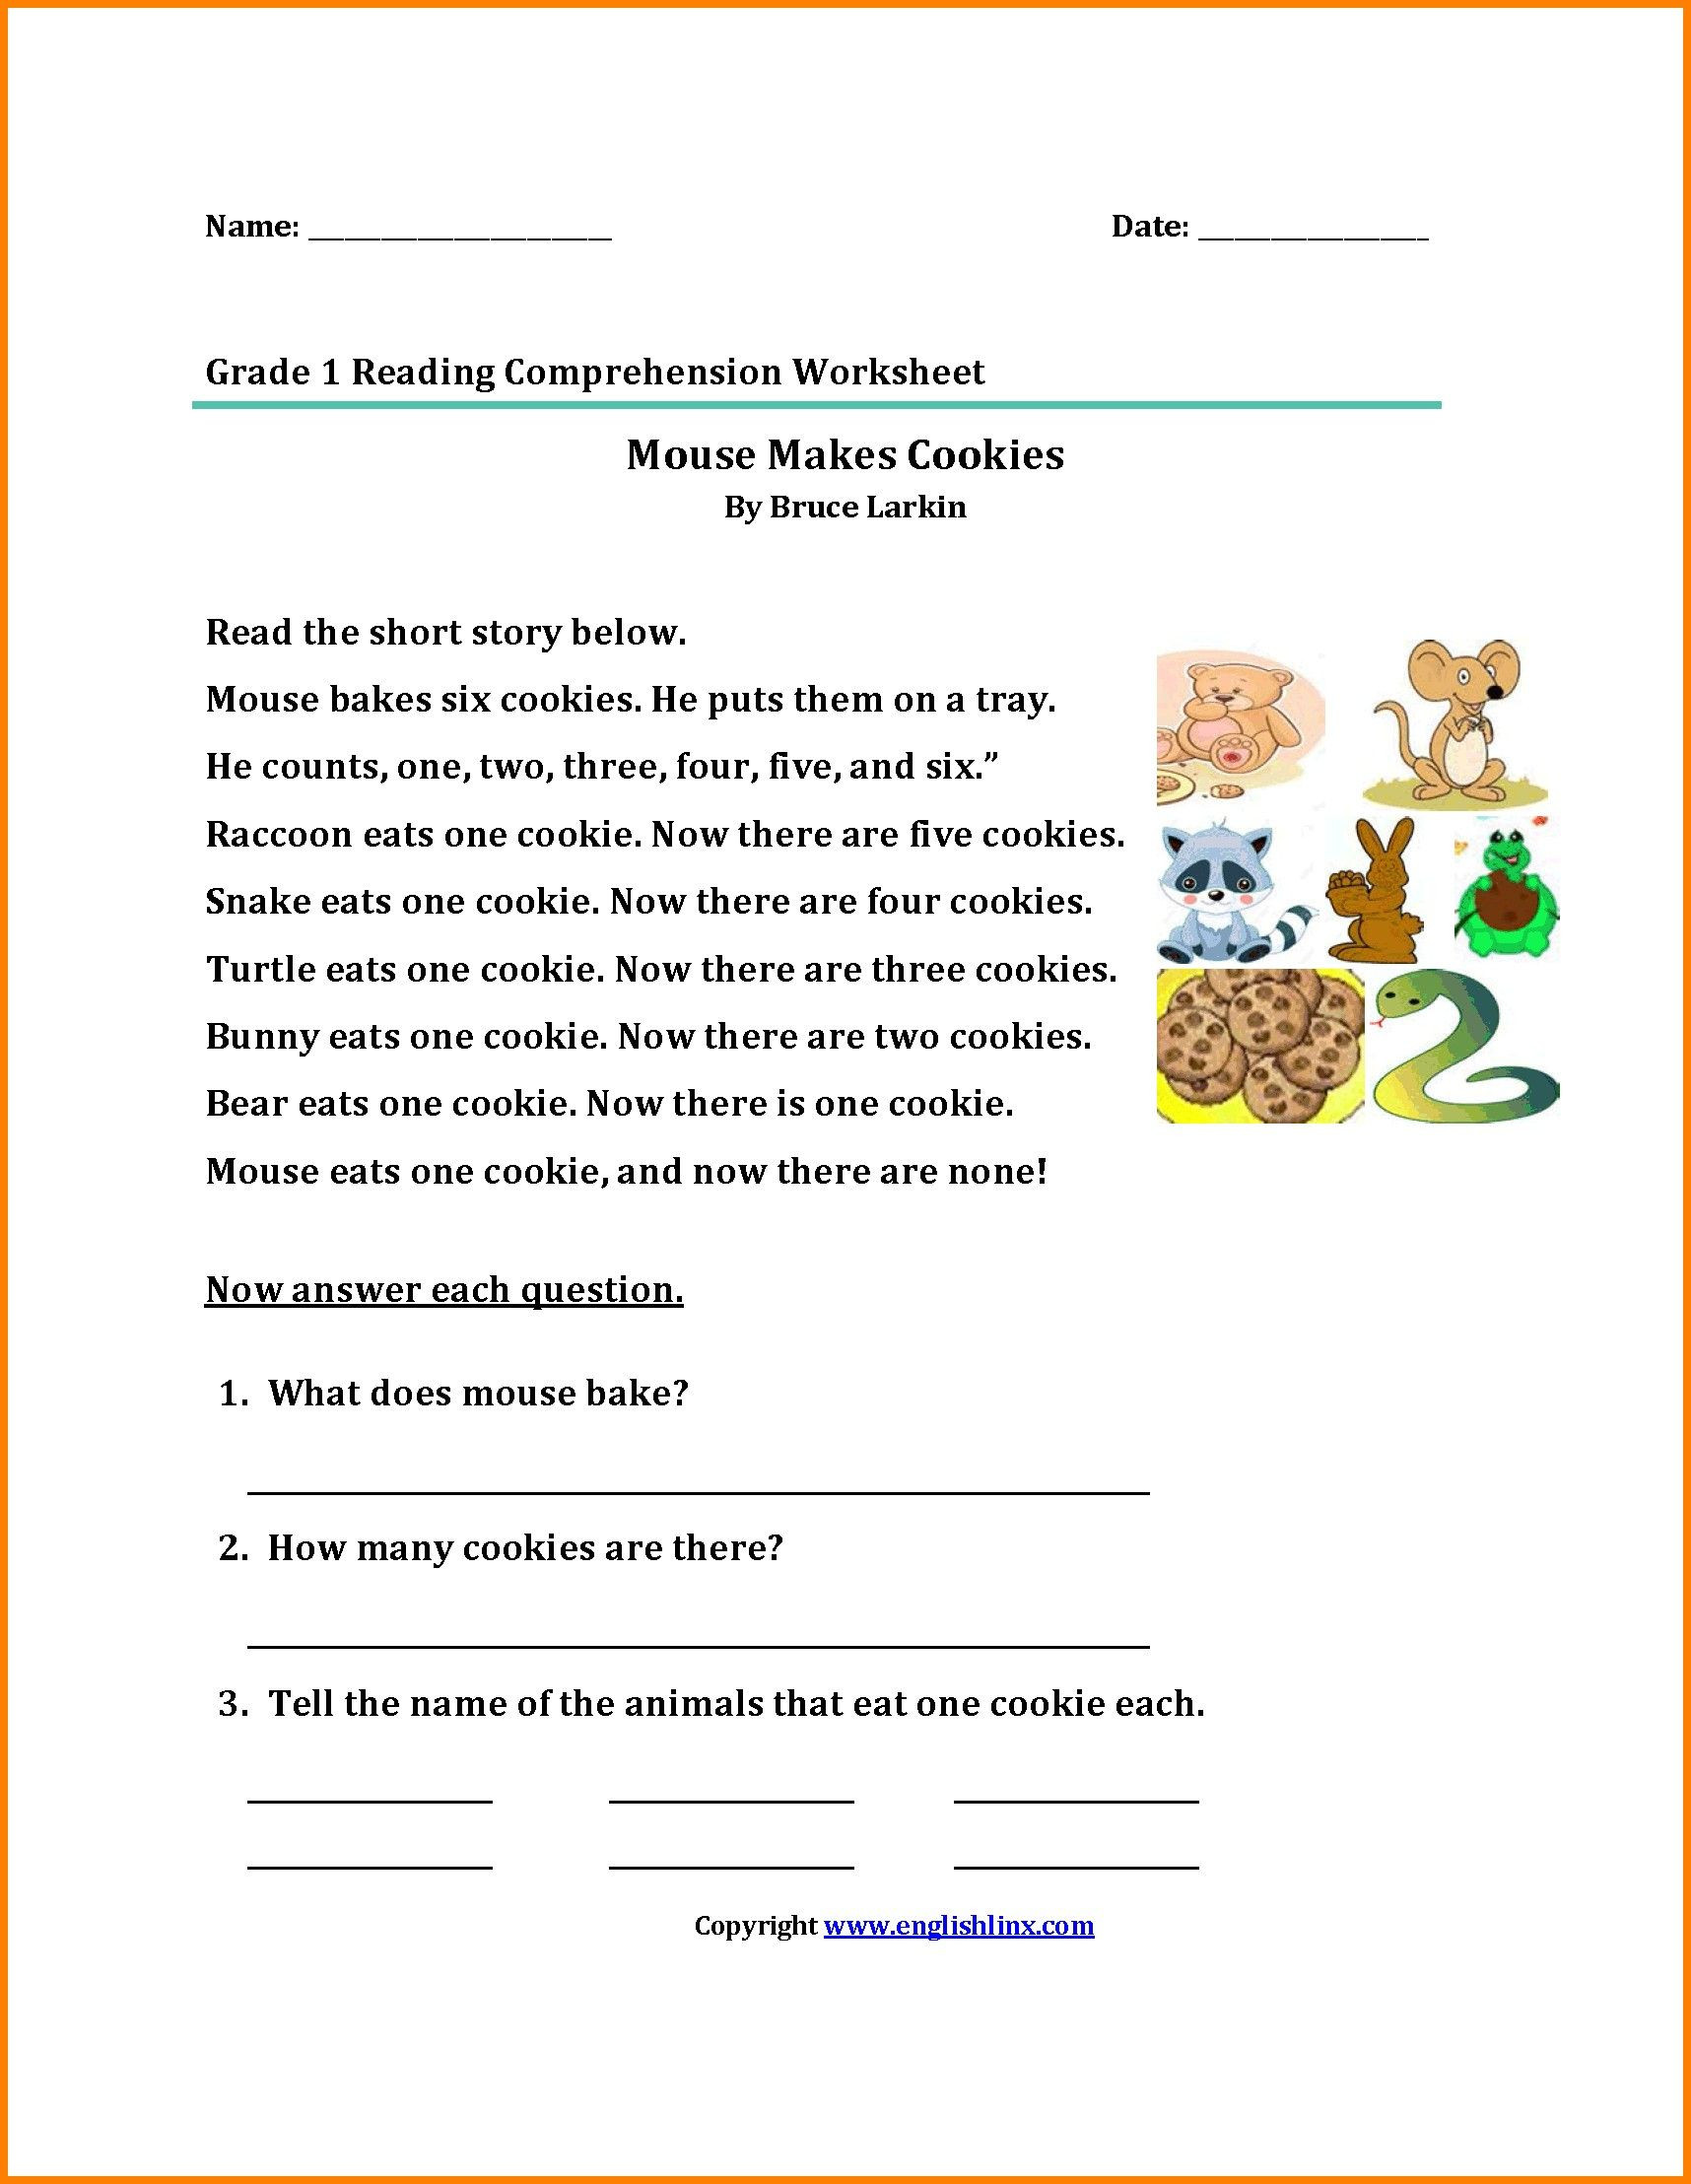 Proofreading Worksheets 3rd Grade 38 Innovative Reading Prehension Worksheets Design Ideas